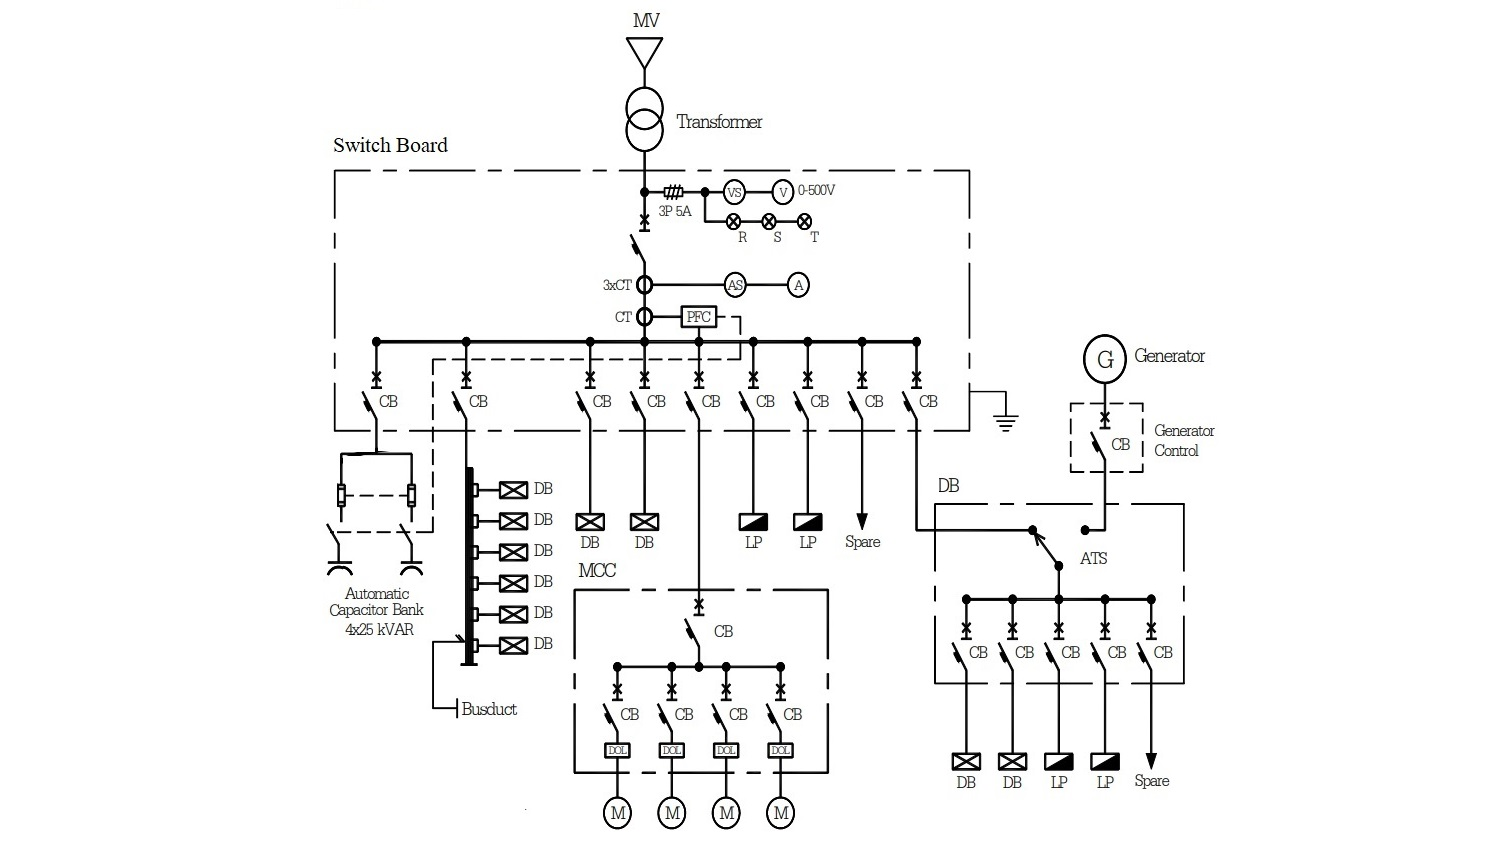 hight resolution of switchboard single line diagram factomart industrial products single line diagram tutorial single line diagram